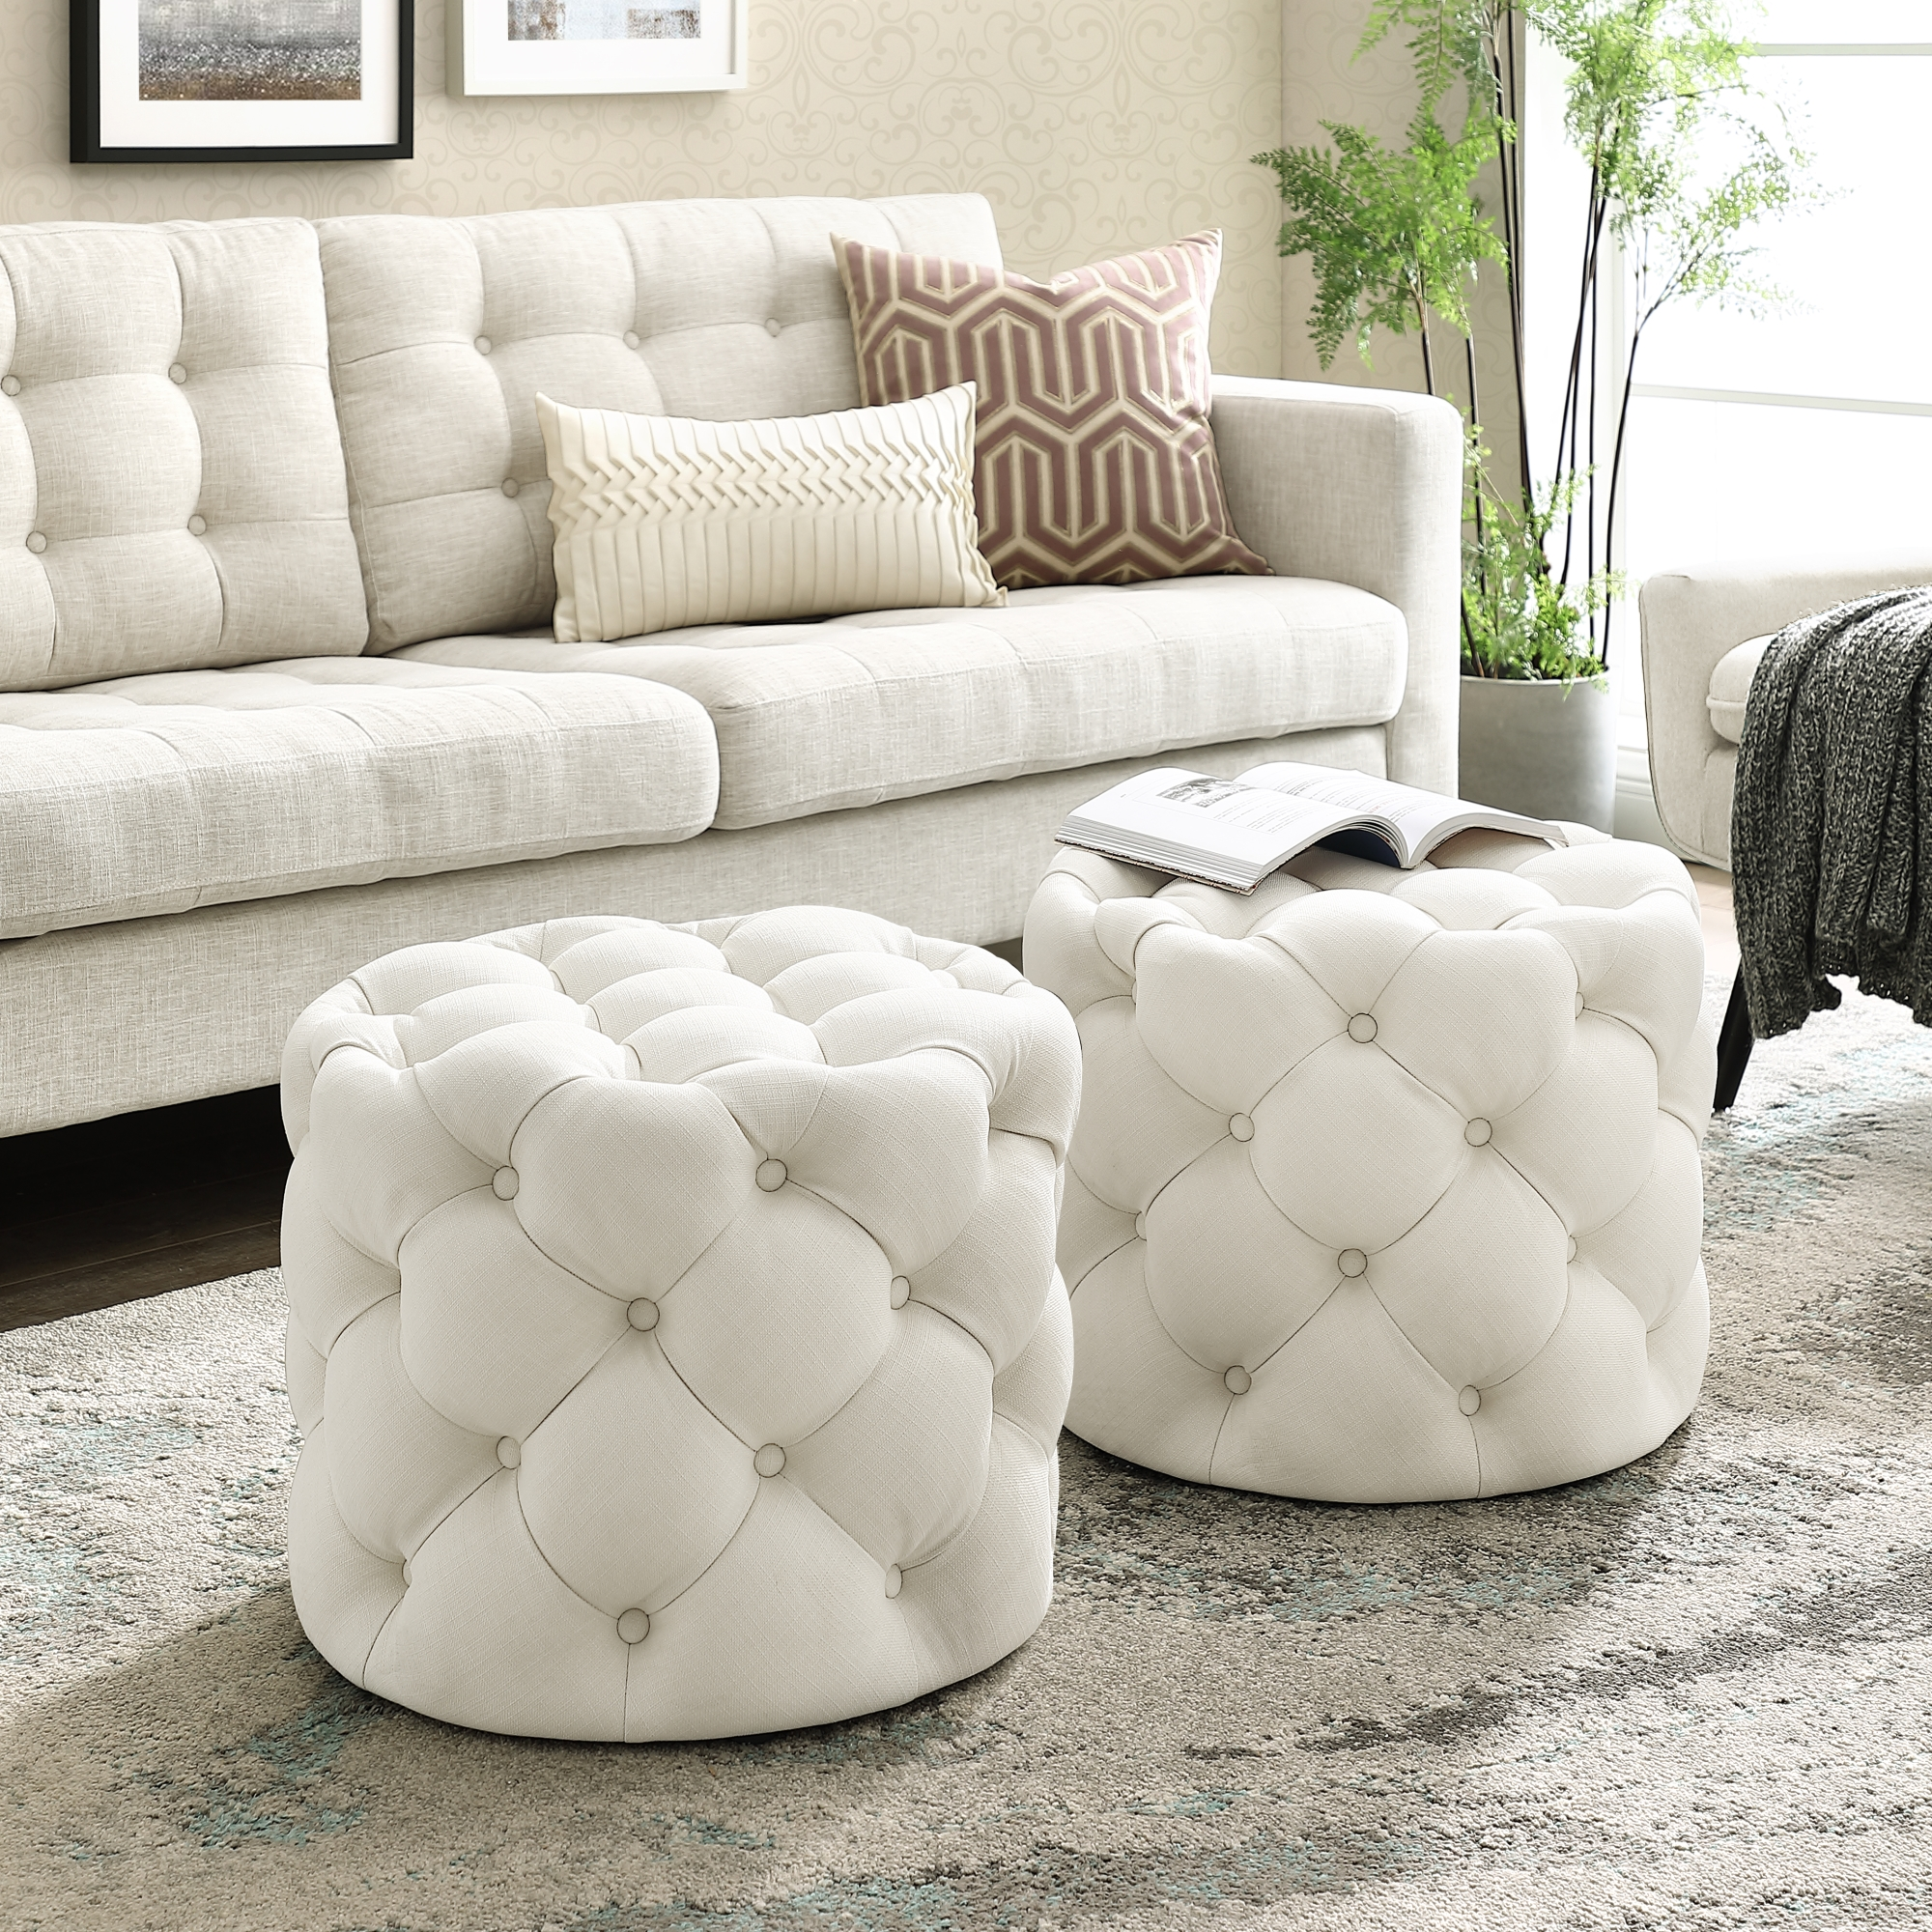 Perilous Cream White Linen Ottoman - Allover Tufted | Round | Modern Contemporary | 1 PC